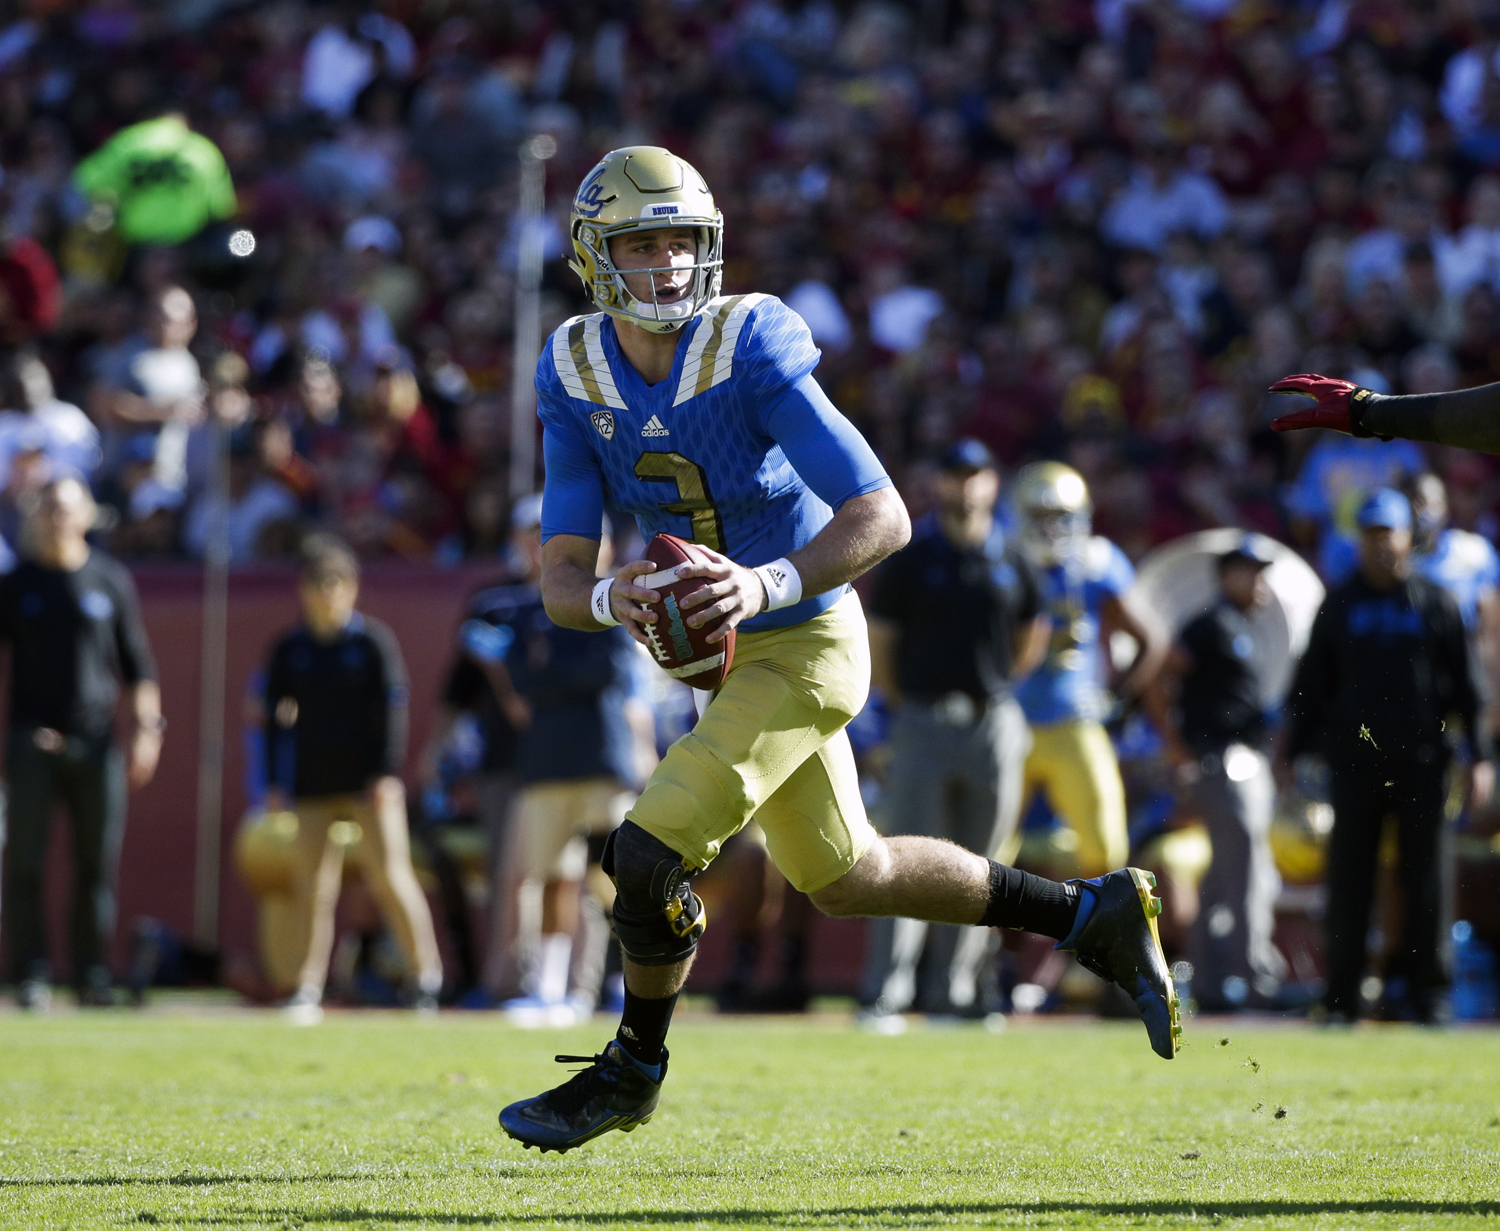 FILE - In this Nov. 28, 2015, file photo, UCLA quarterback Josh Rosen looks for a receiver during the first half of an NCAA college football game against Southern California, in Los Angeles. A new offensive scheme should mean bigger plays and more chances